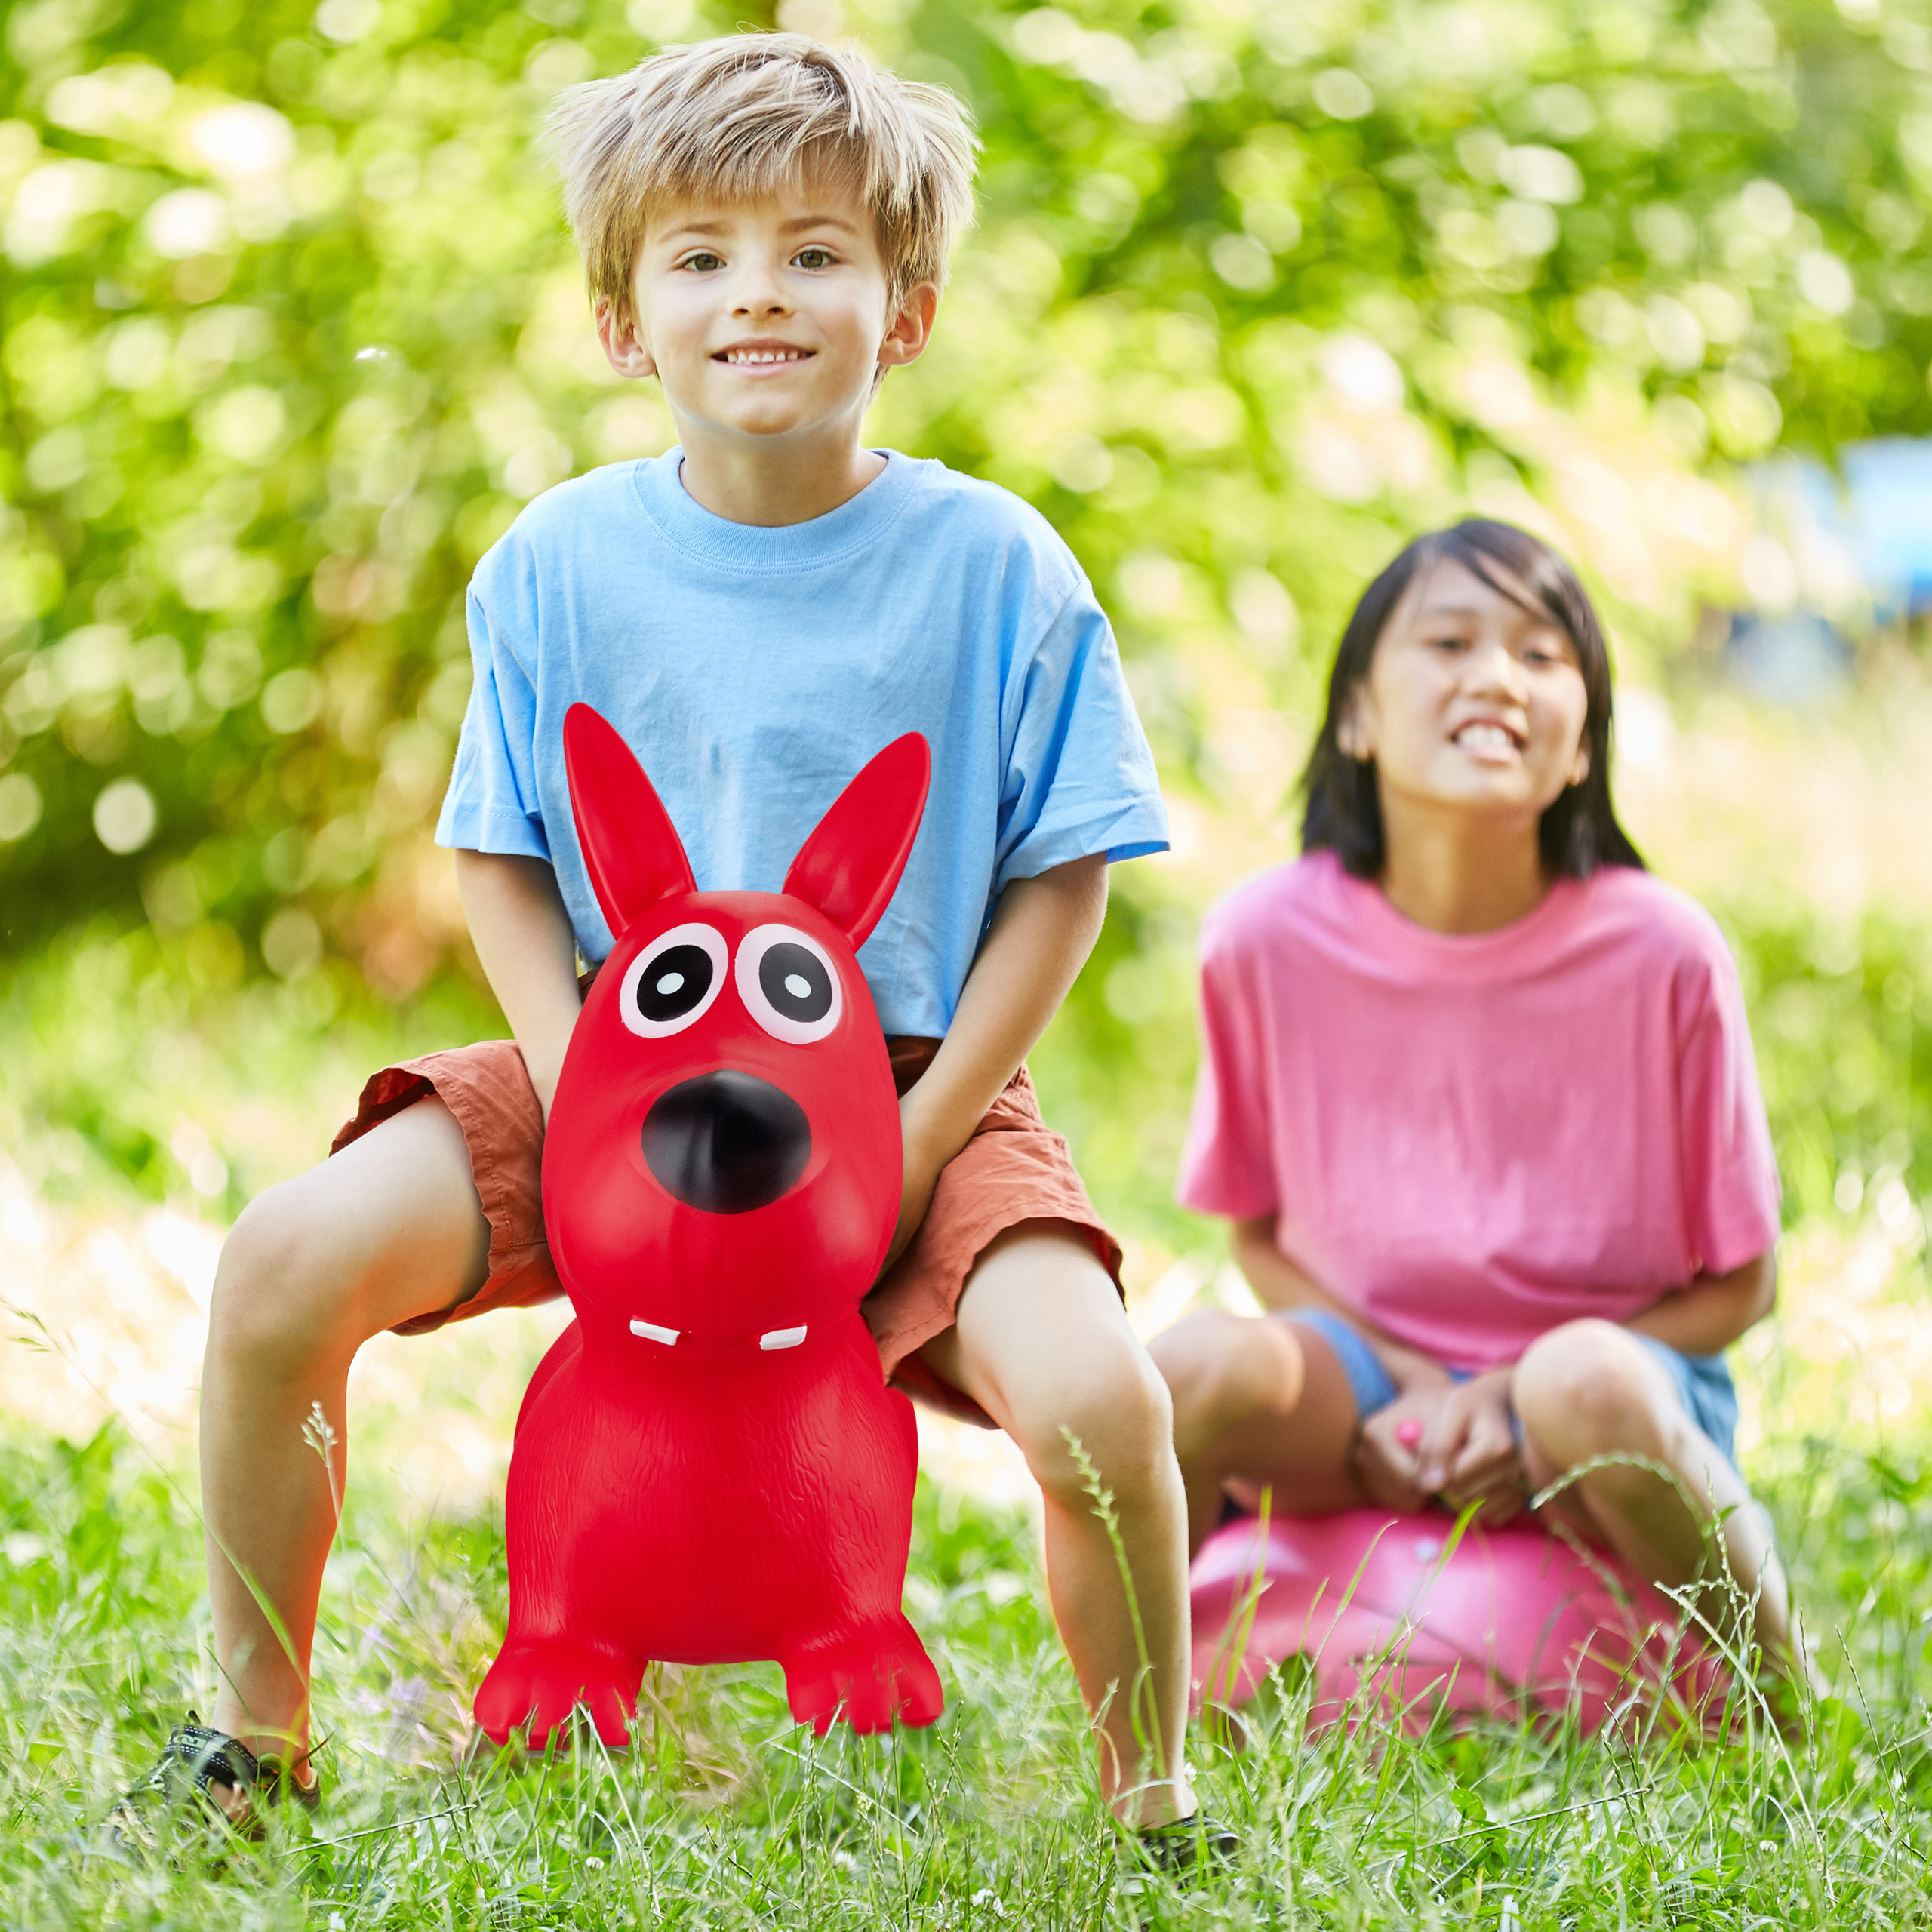 Hopping-Animal-Bouncy-Dog-for-Children-up-to-50-kg-Space-Hopper-Colourful thumbnail 4